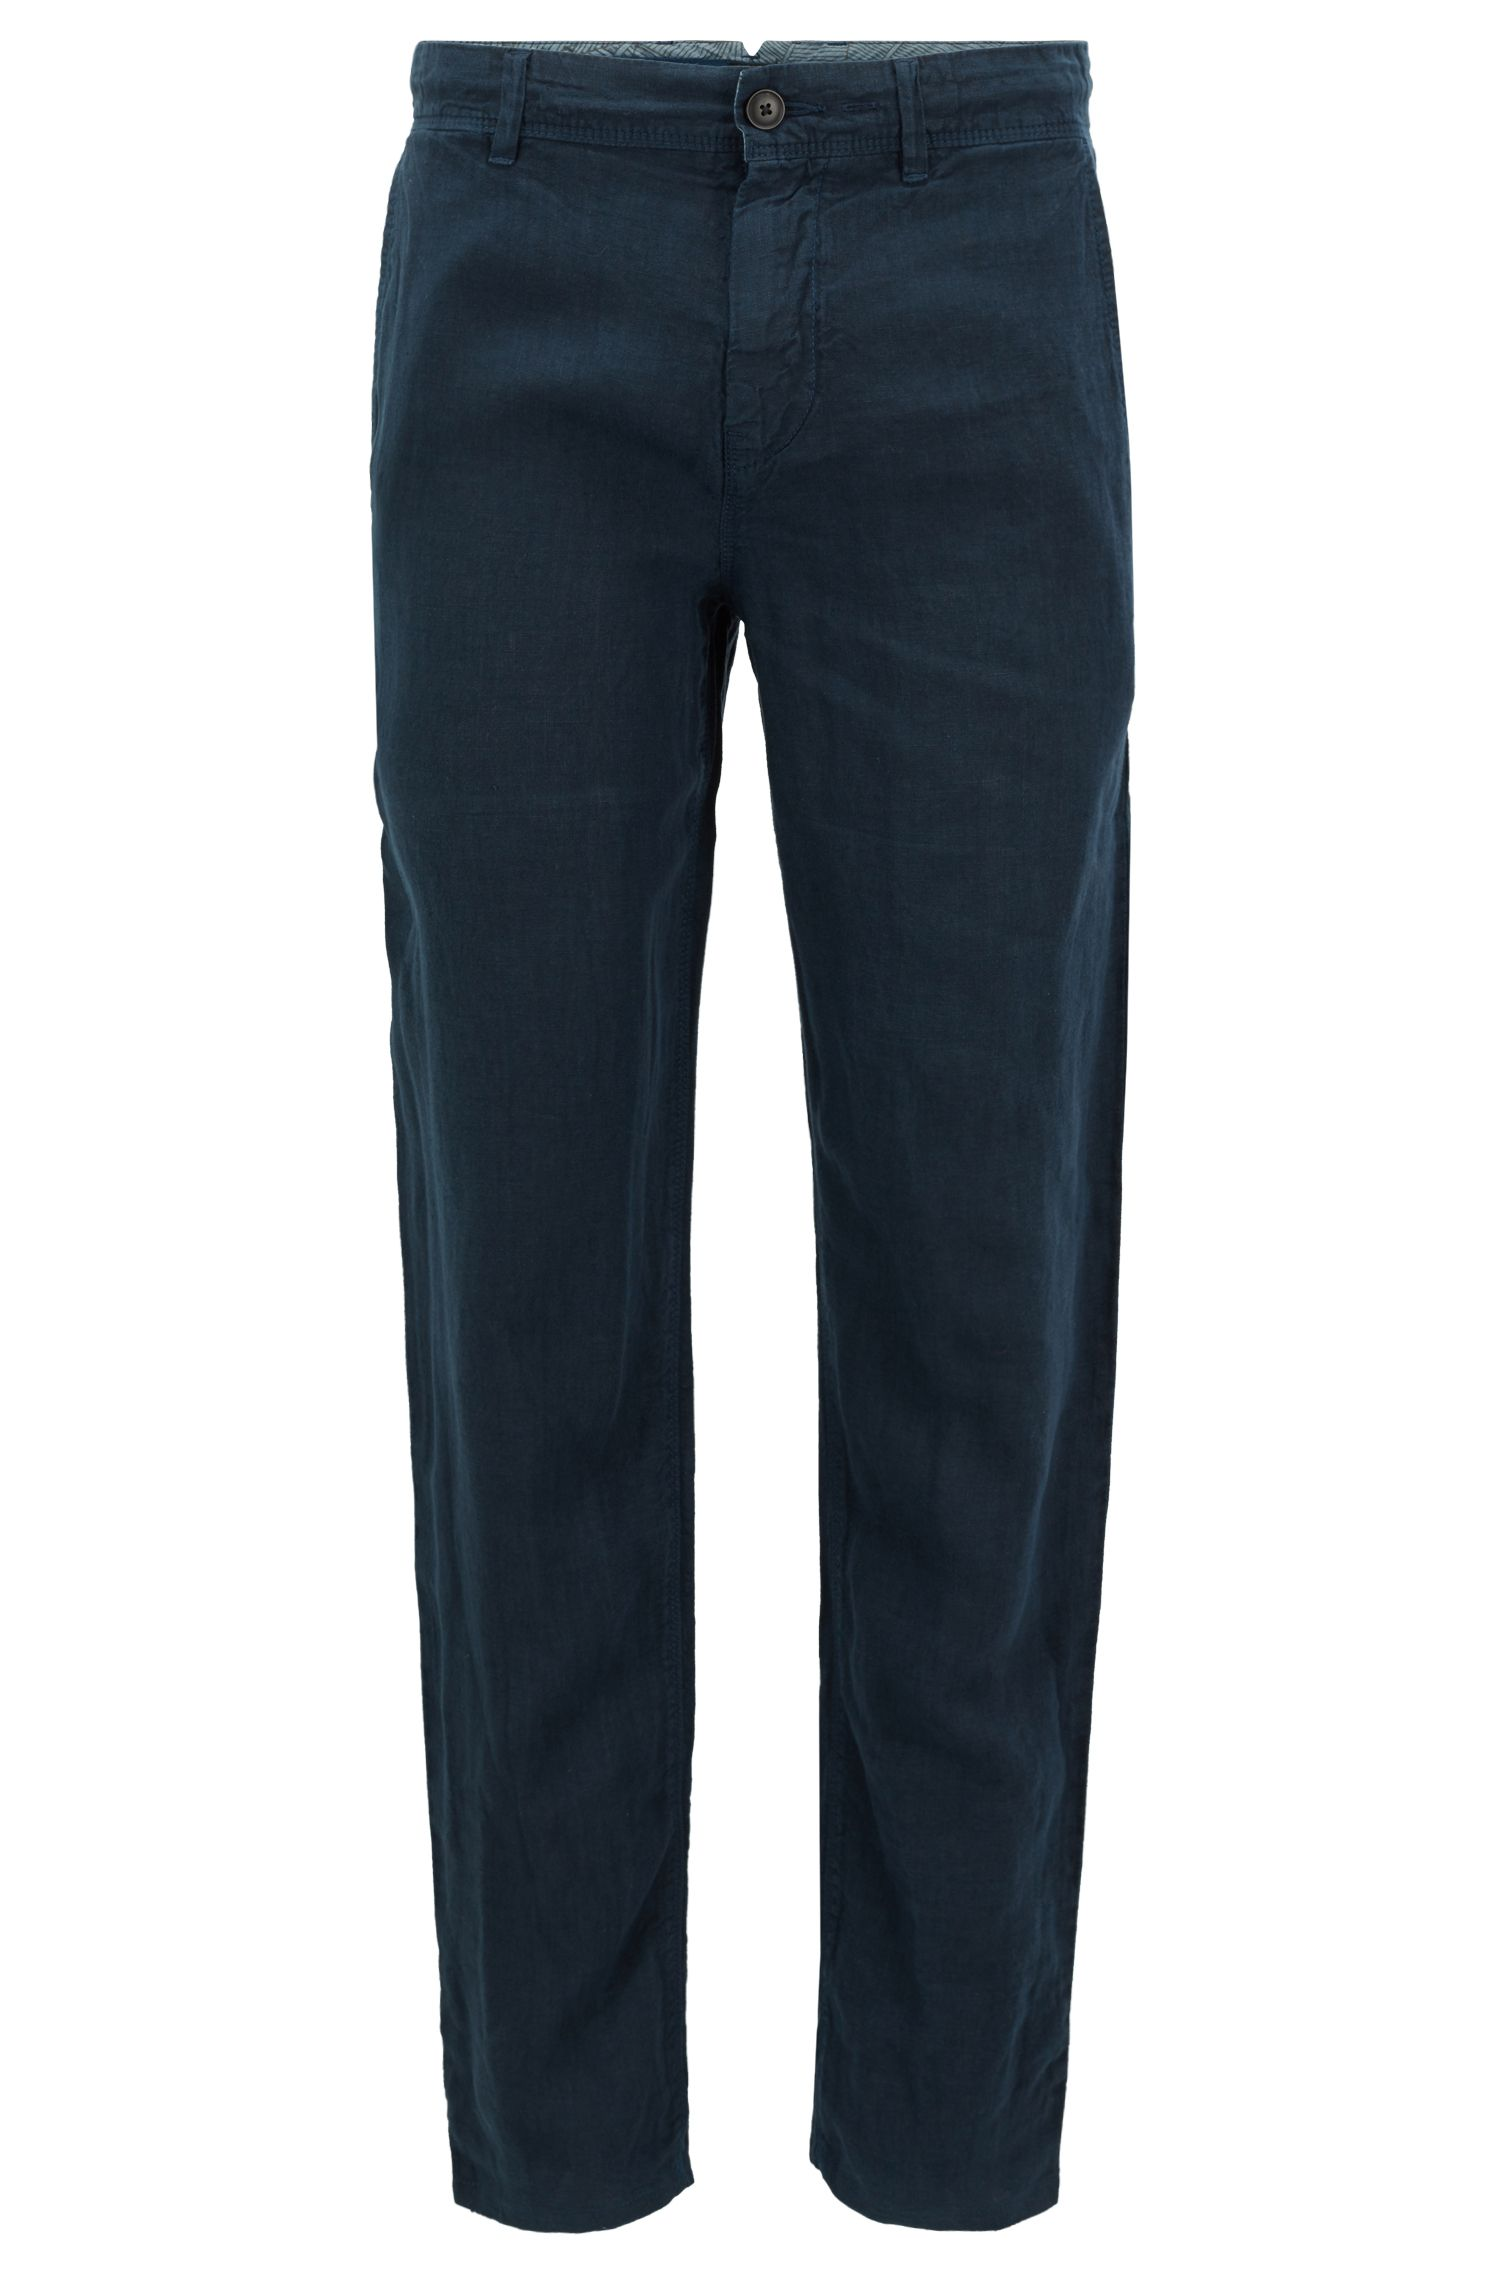 Pantaloni tapered fit in lino sovratinto